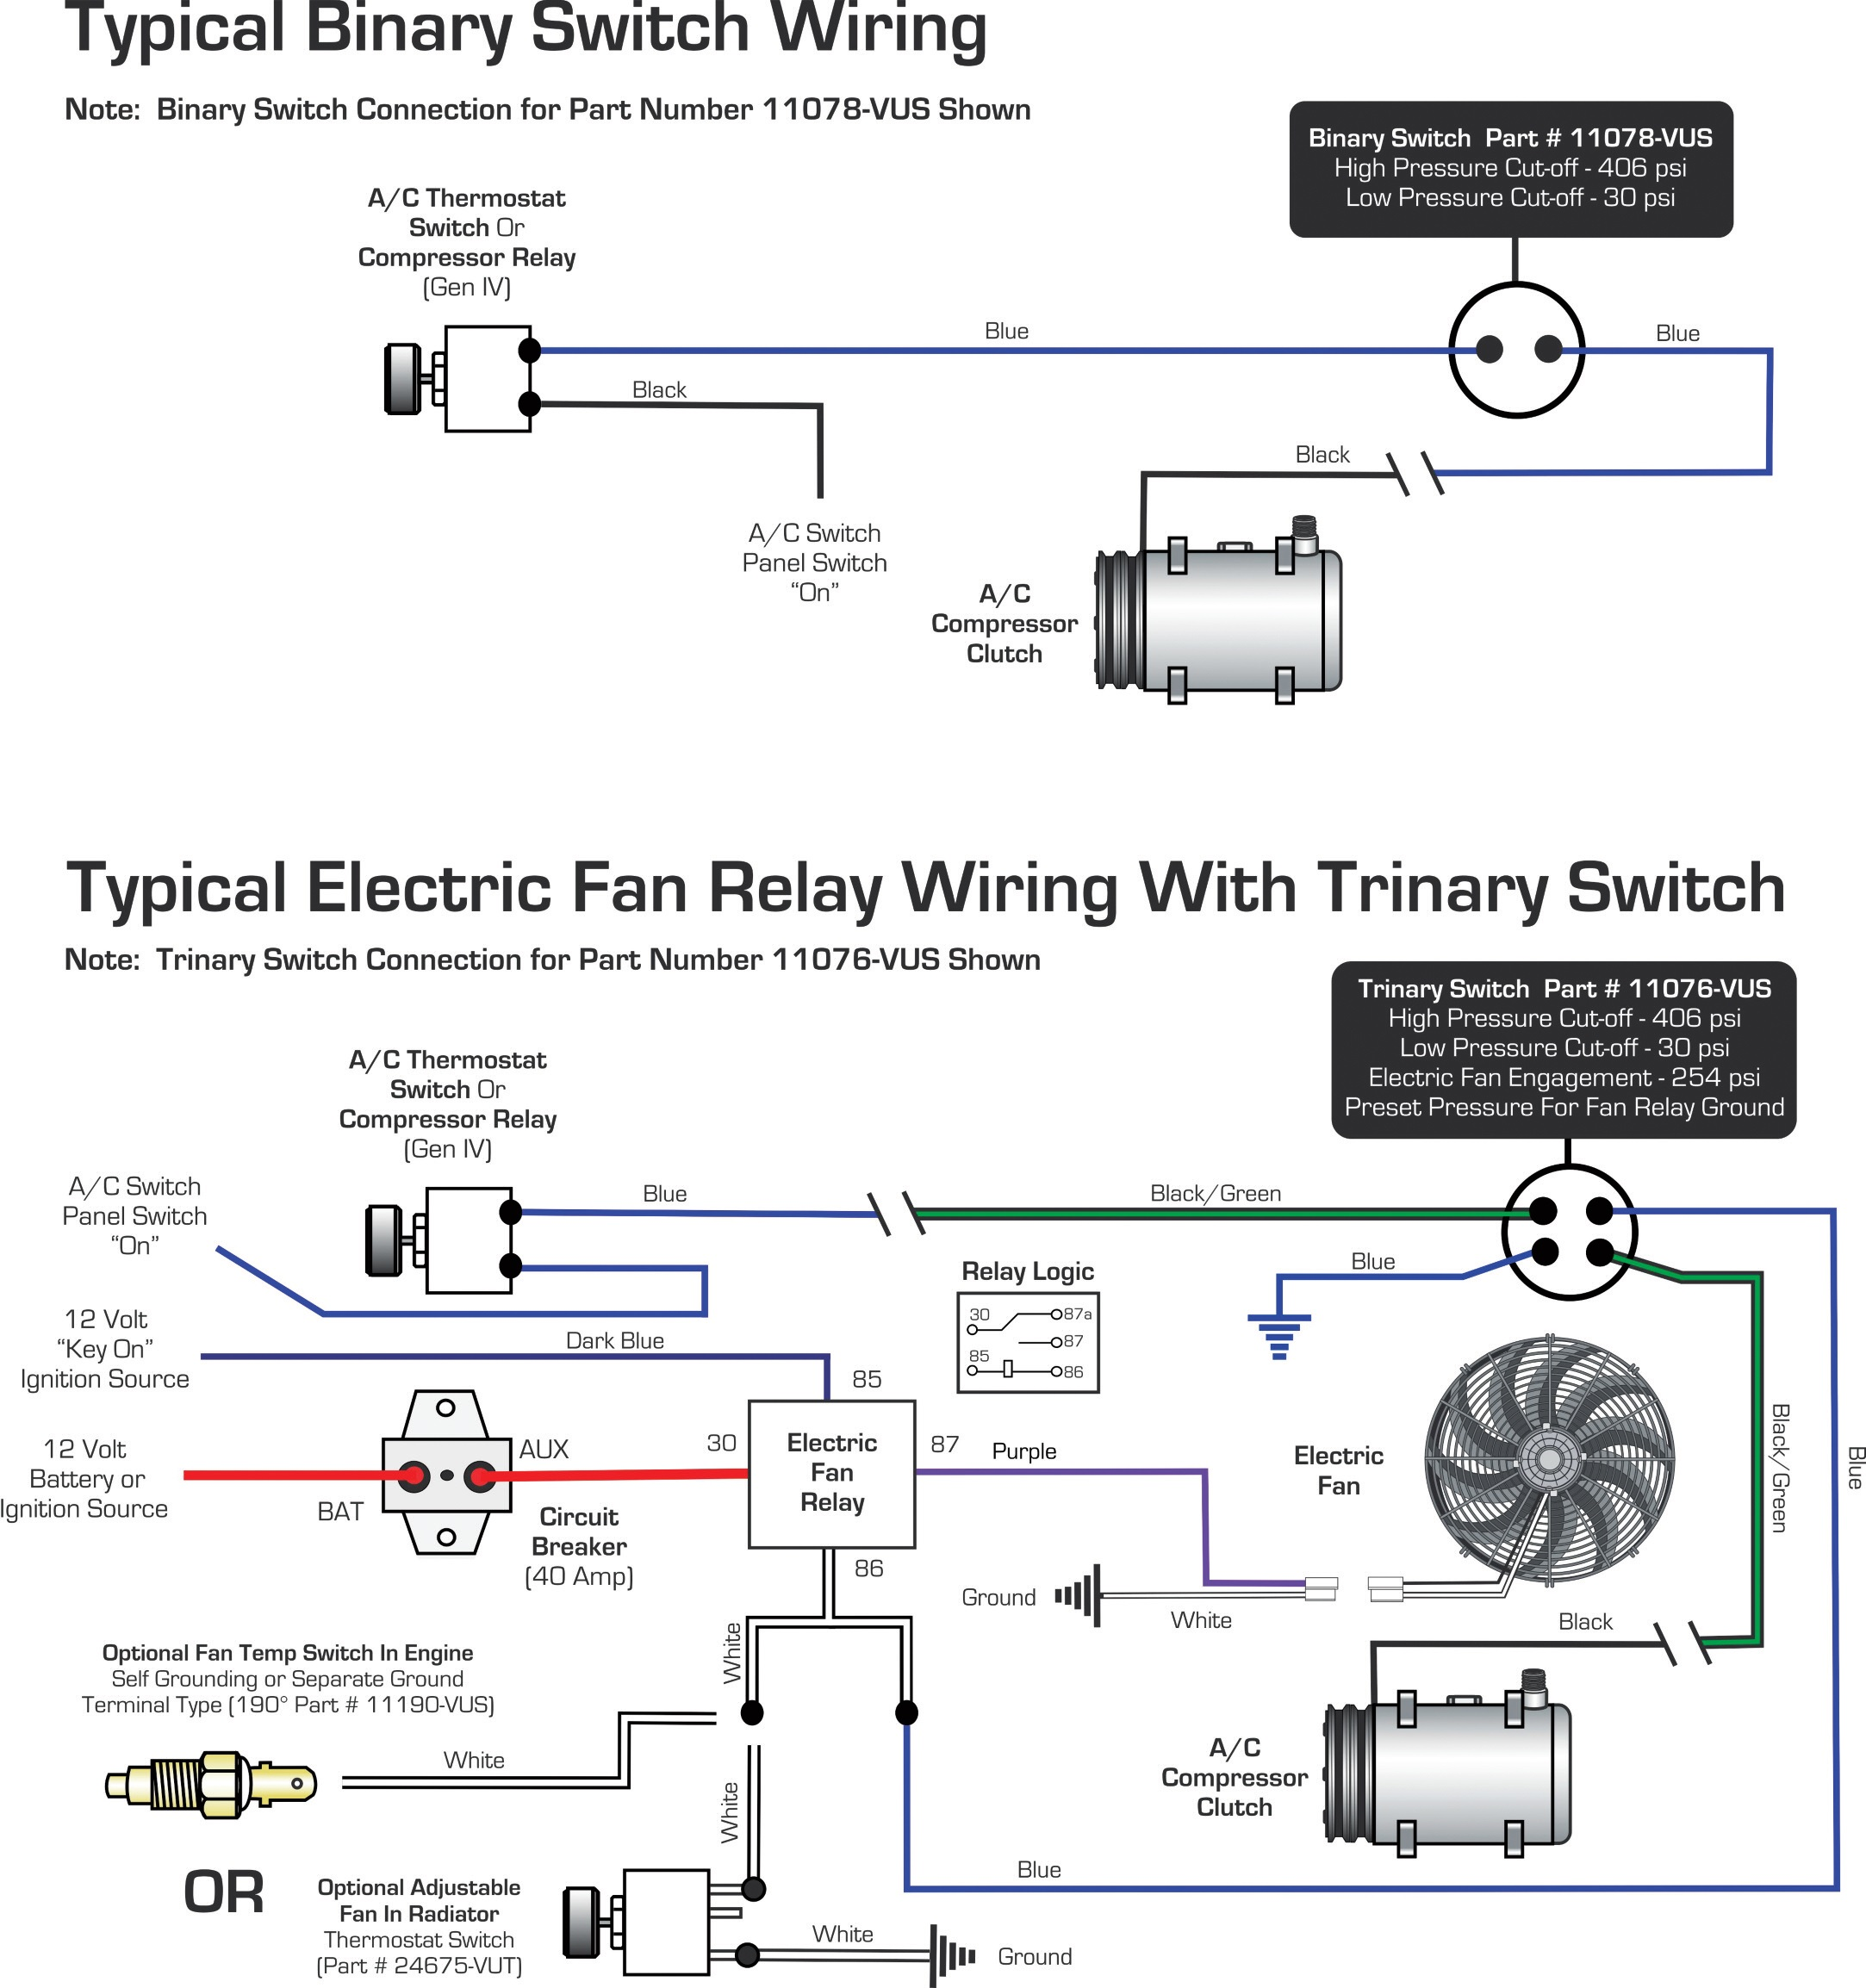 vintage air blog archive wiring diagrams binary switch trinary rh vintageair com vintage air wiring diagram for blower motor 1969 camaro vintage air wiring diagram